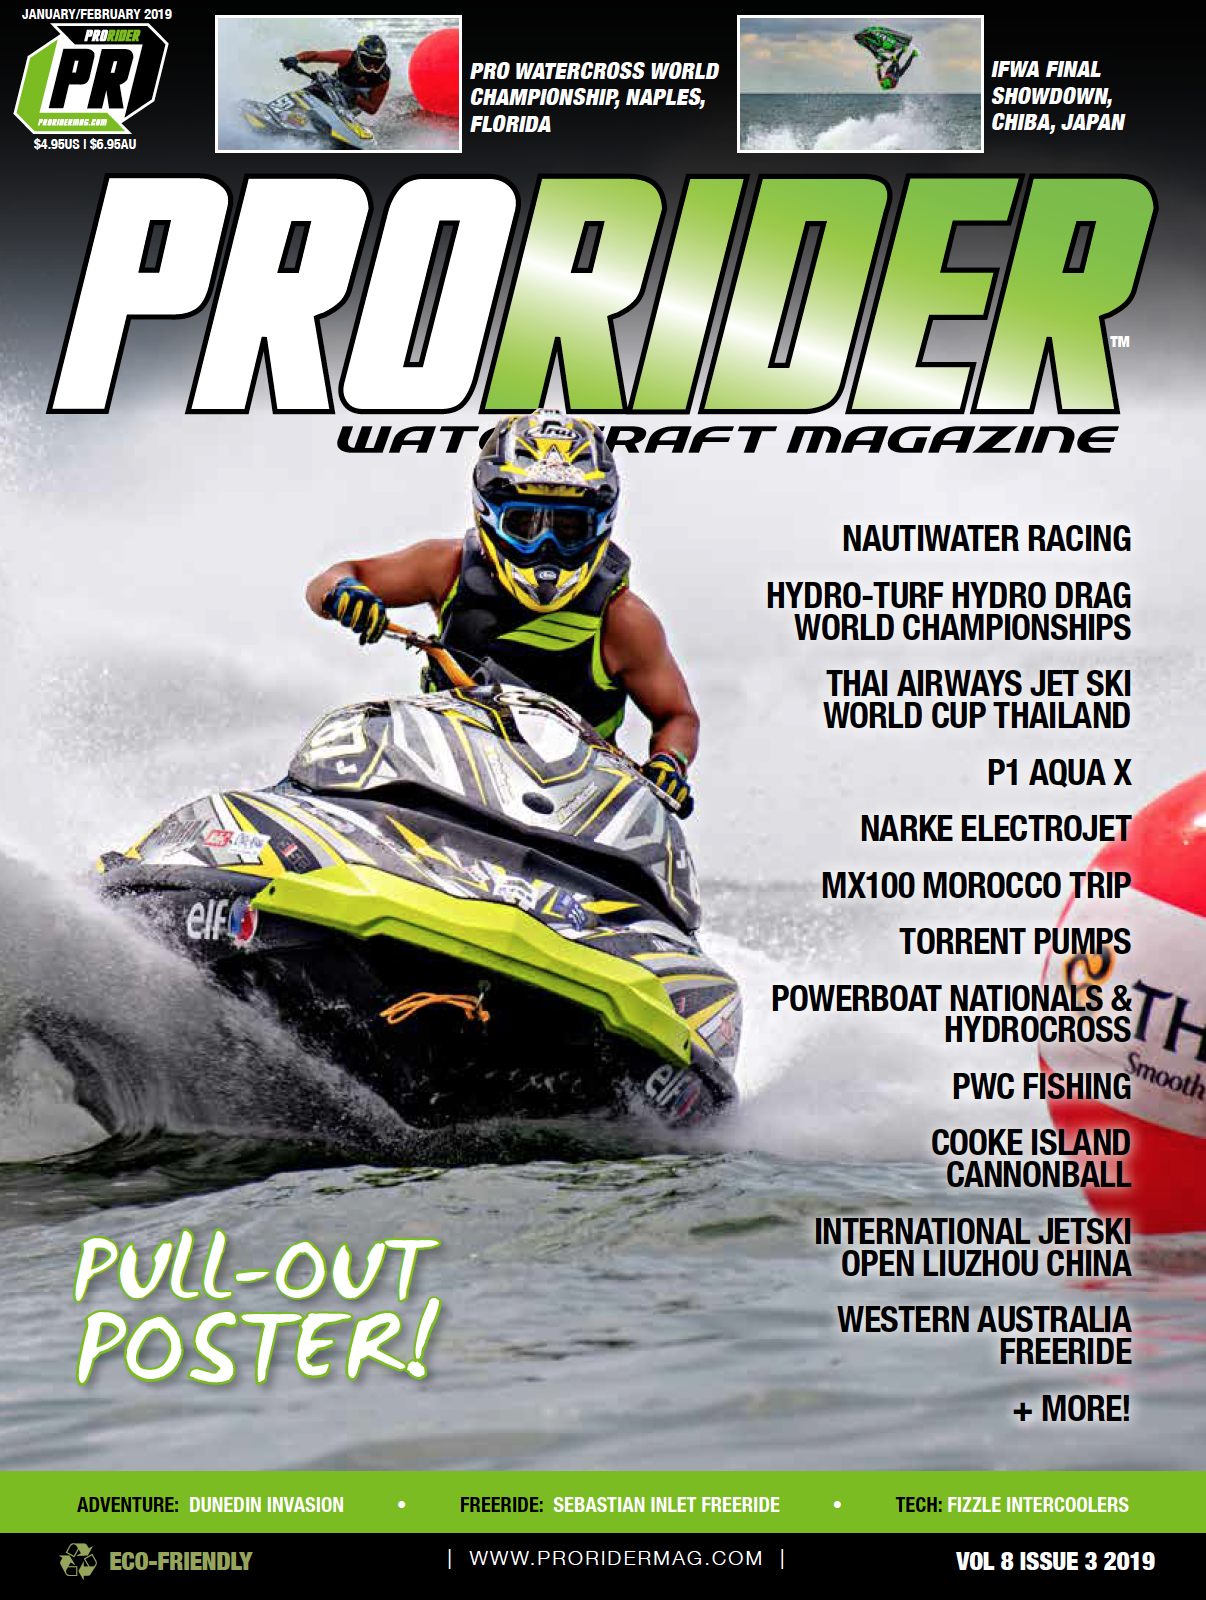 Sea-Doo | Pro Rider Watercraft Magazine - Part 4